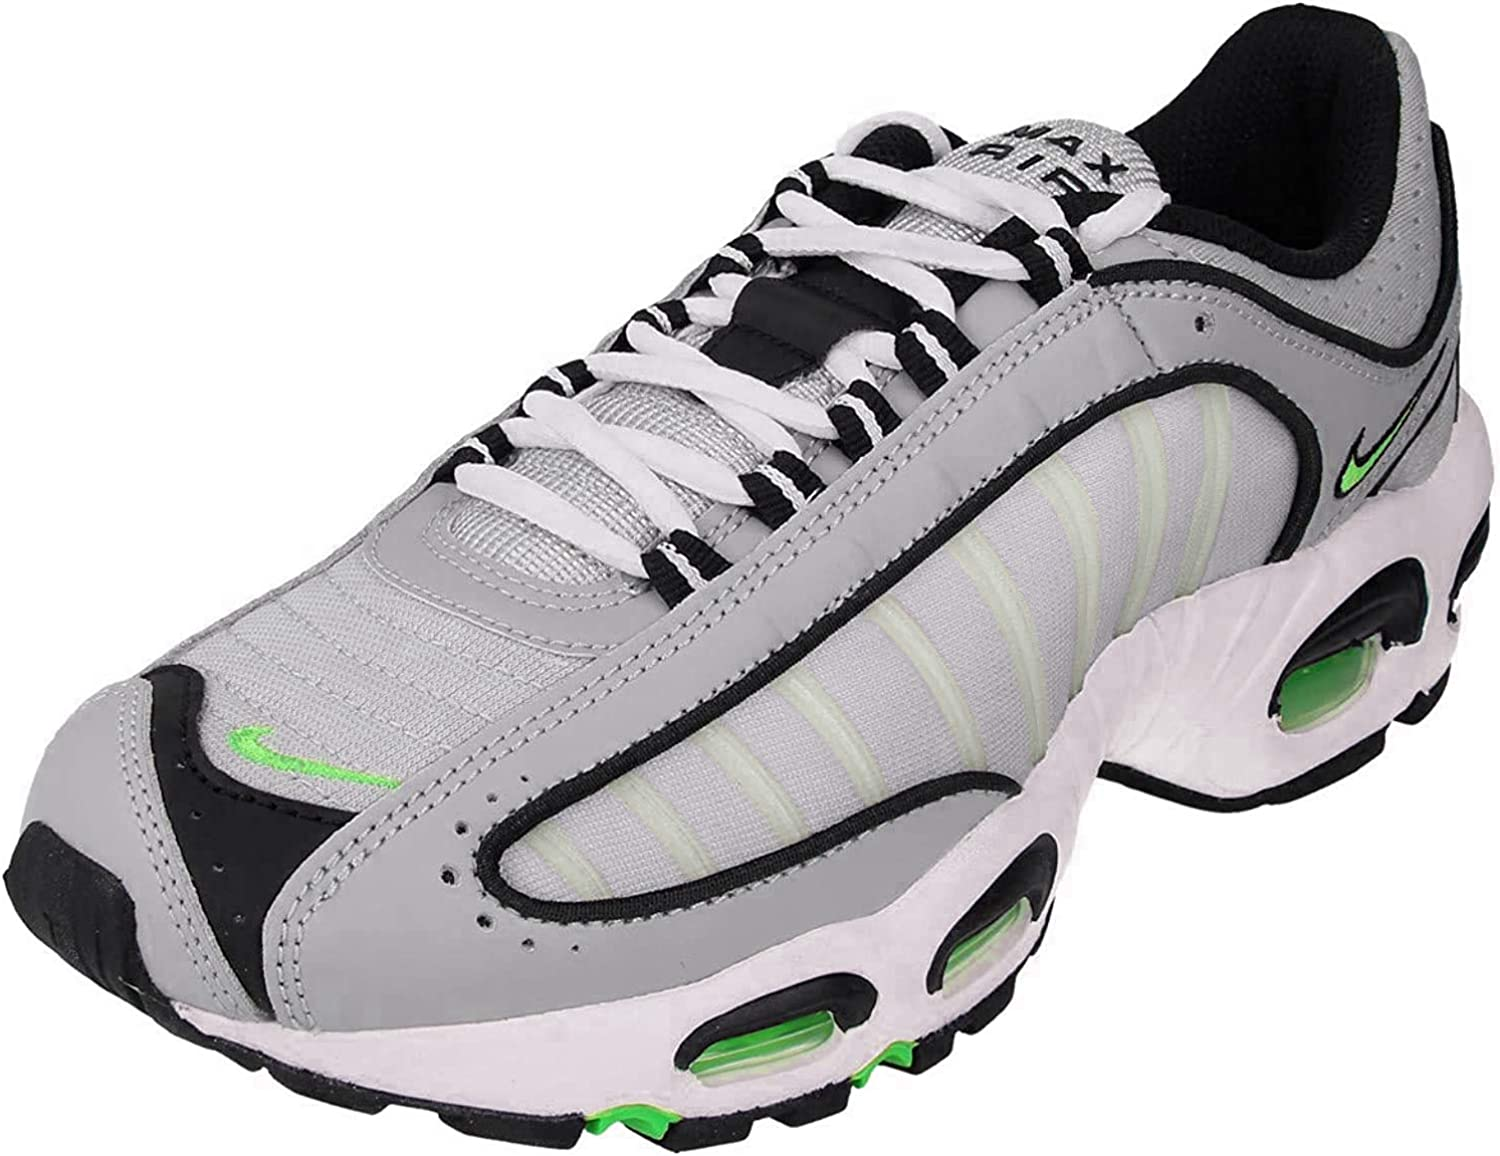 Nike Air Max Tailwind Iv Shoes Running Mens Casual Cd0456-001 List price Max 63% OFF